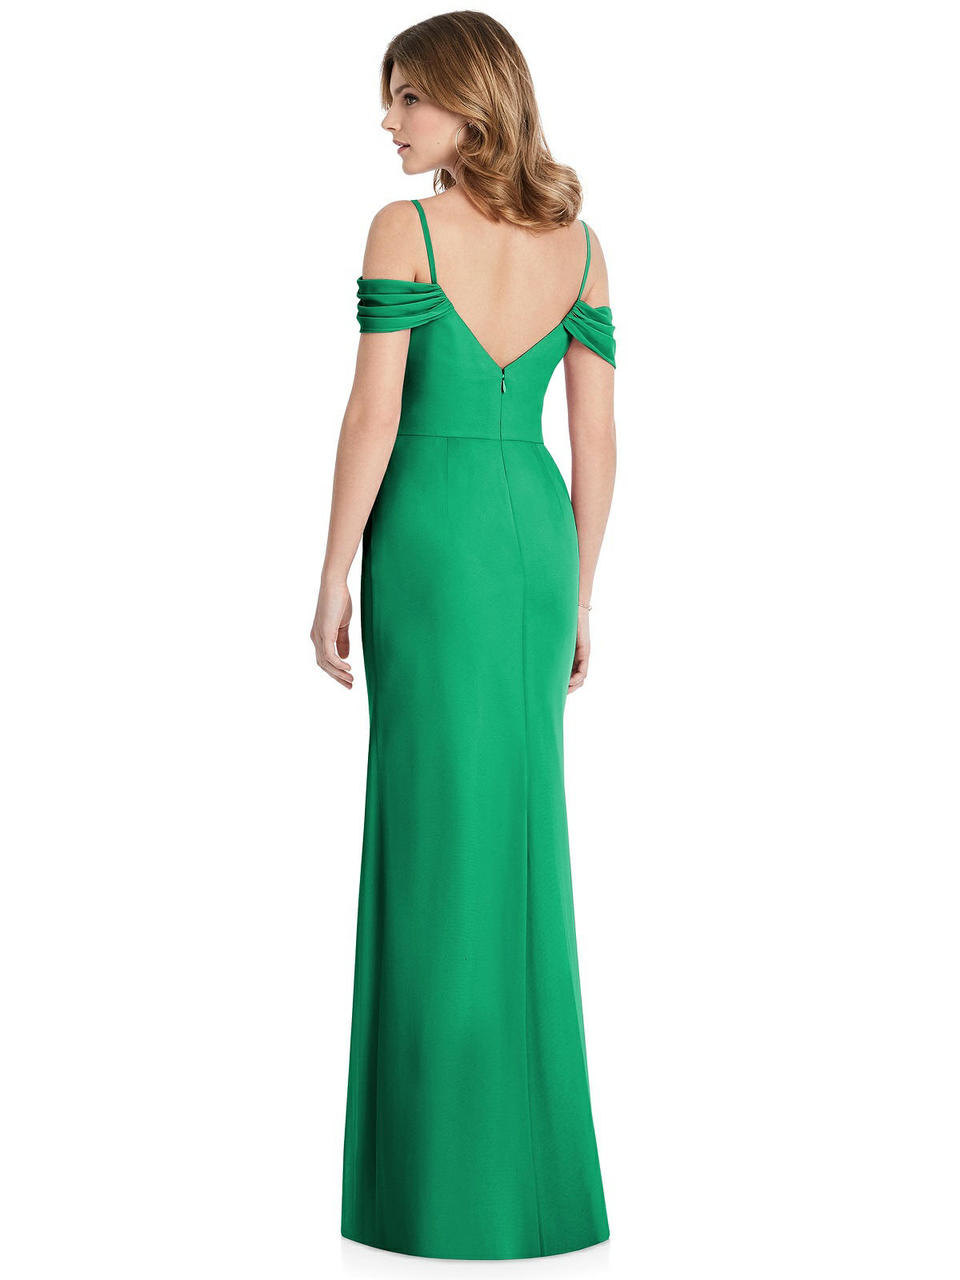 c3720bd5975 After Six Bridesmaid style 1517 - Lux Chiffon - Curated By Wedding ...